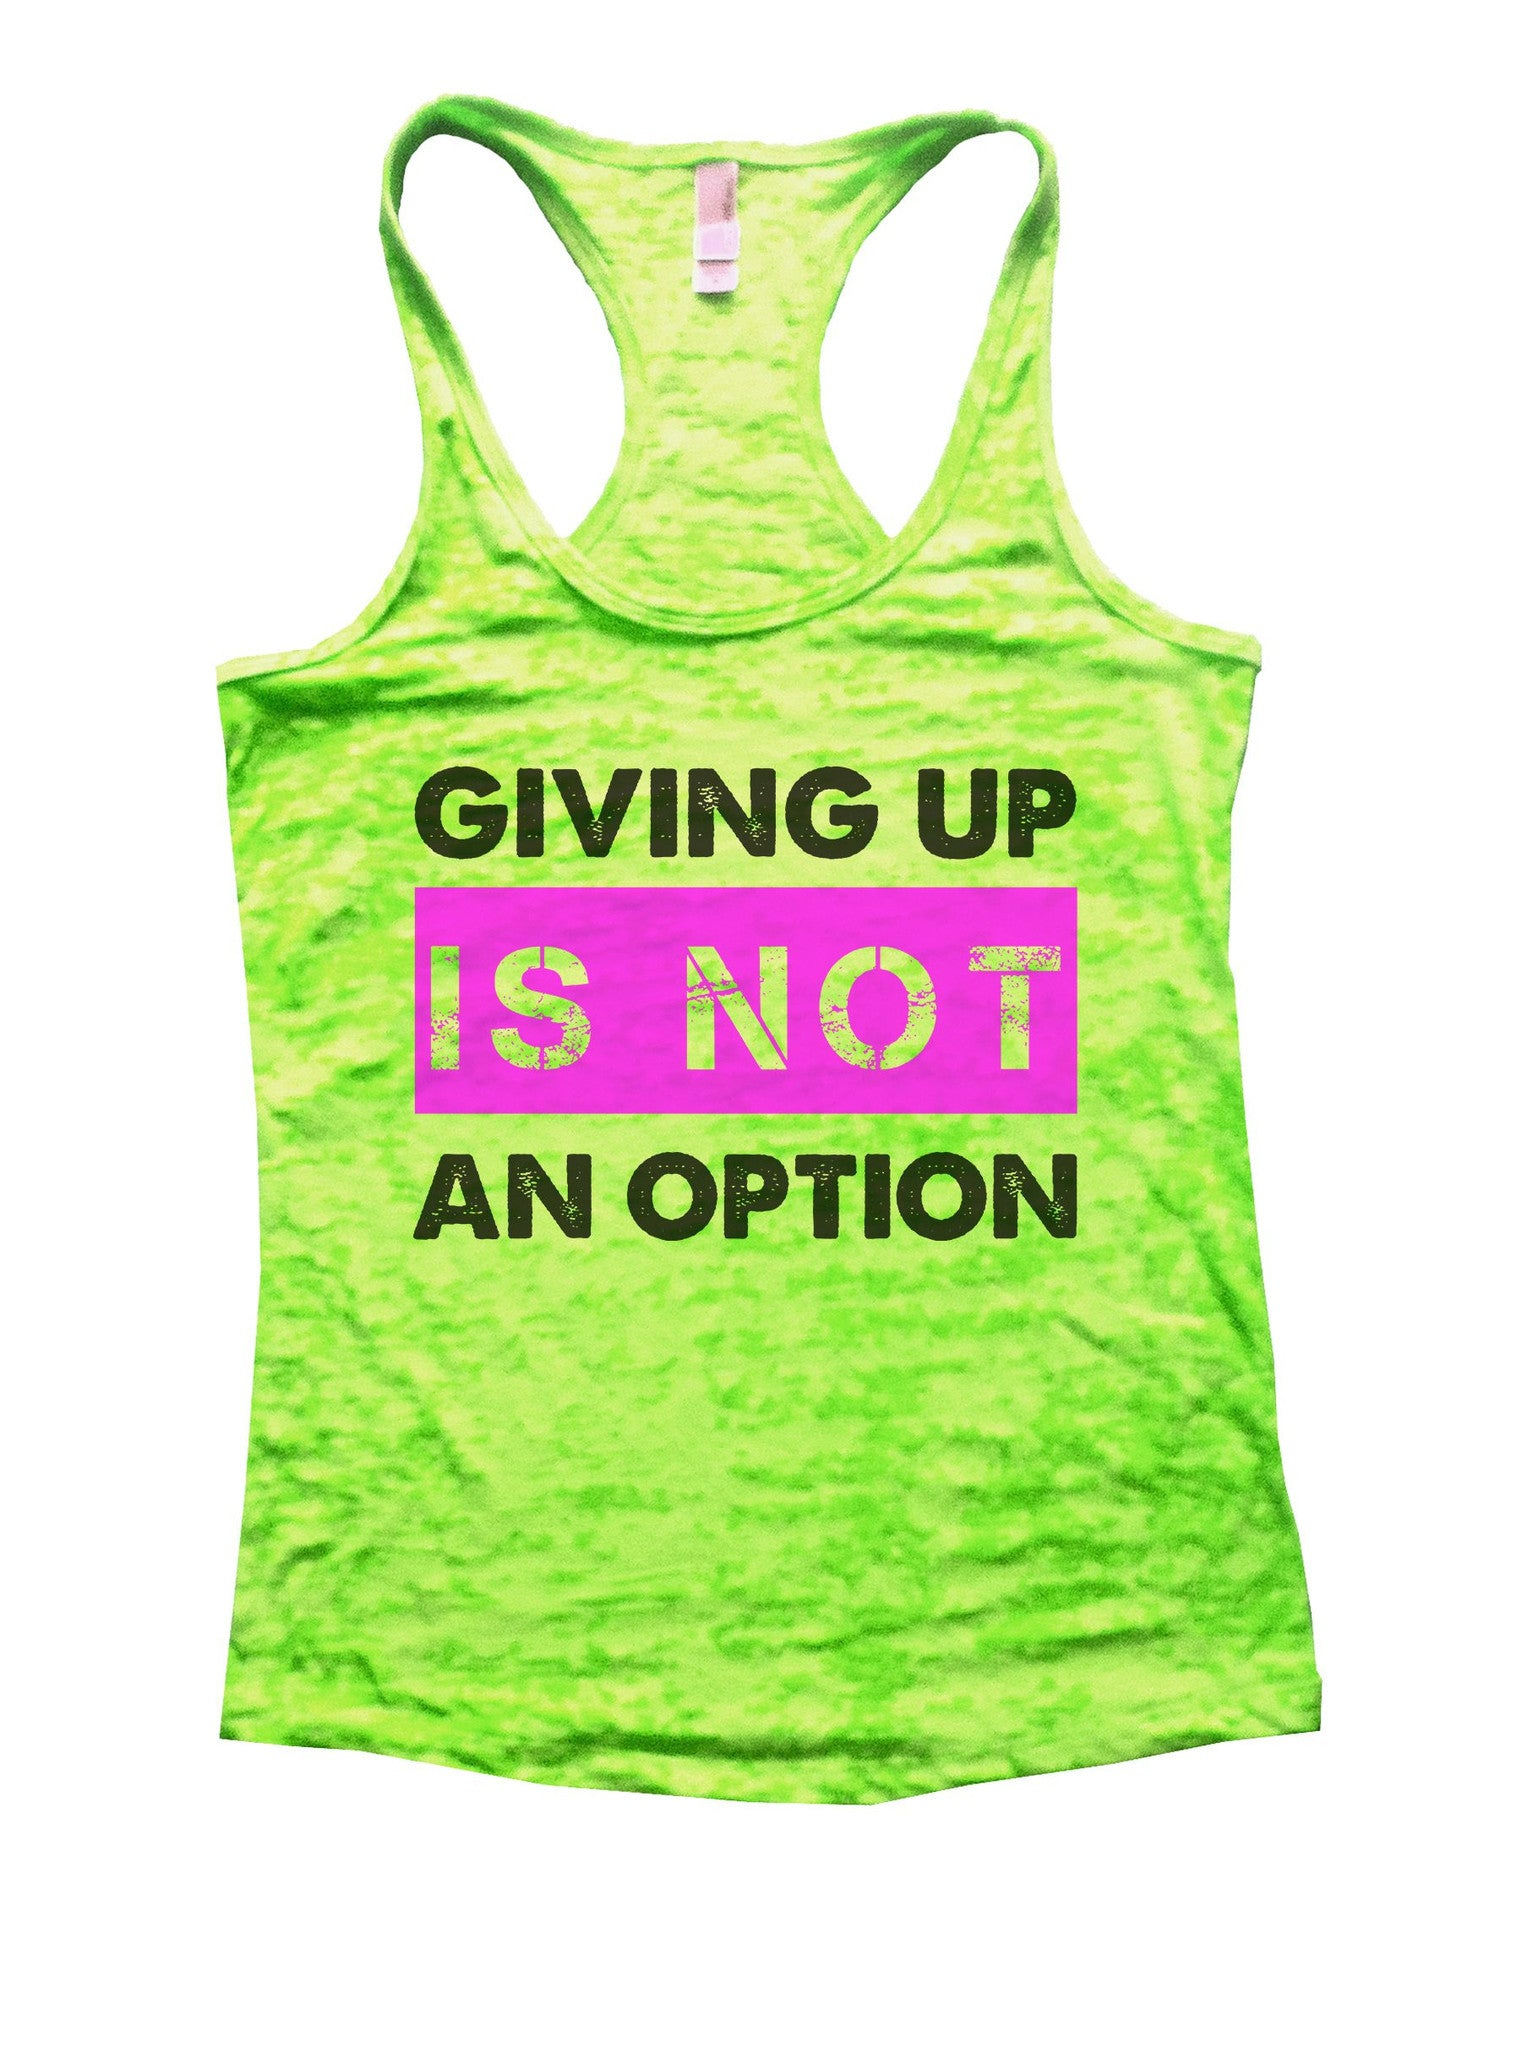 Giving Up Is Not An Option Burnout Tank Top By BurnoutTankTops.com - 844 - Funny Shirts Tank Tops Burnouts and Triblends  - 2